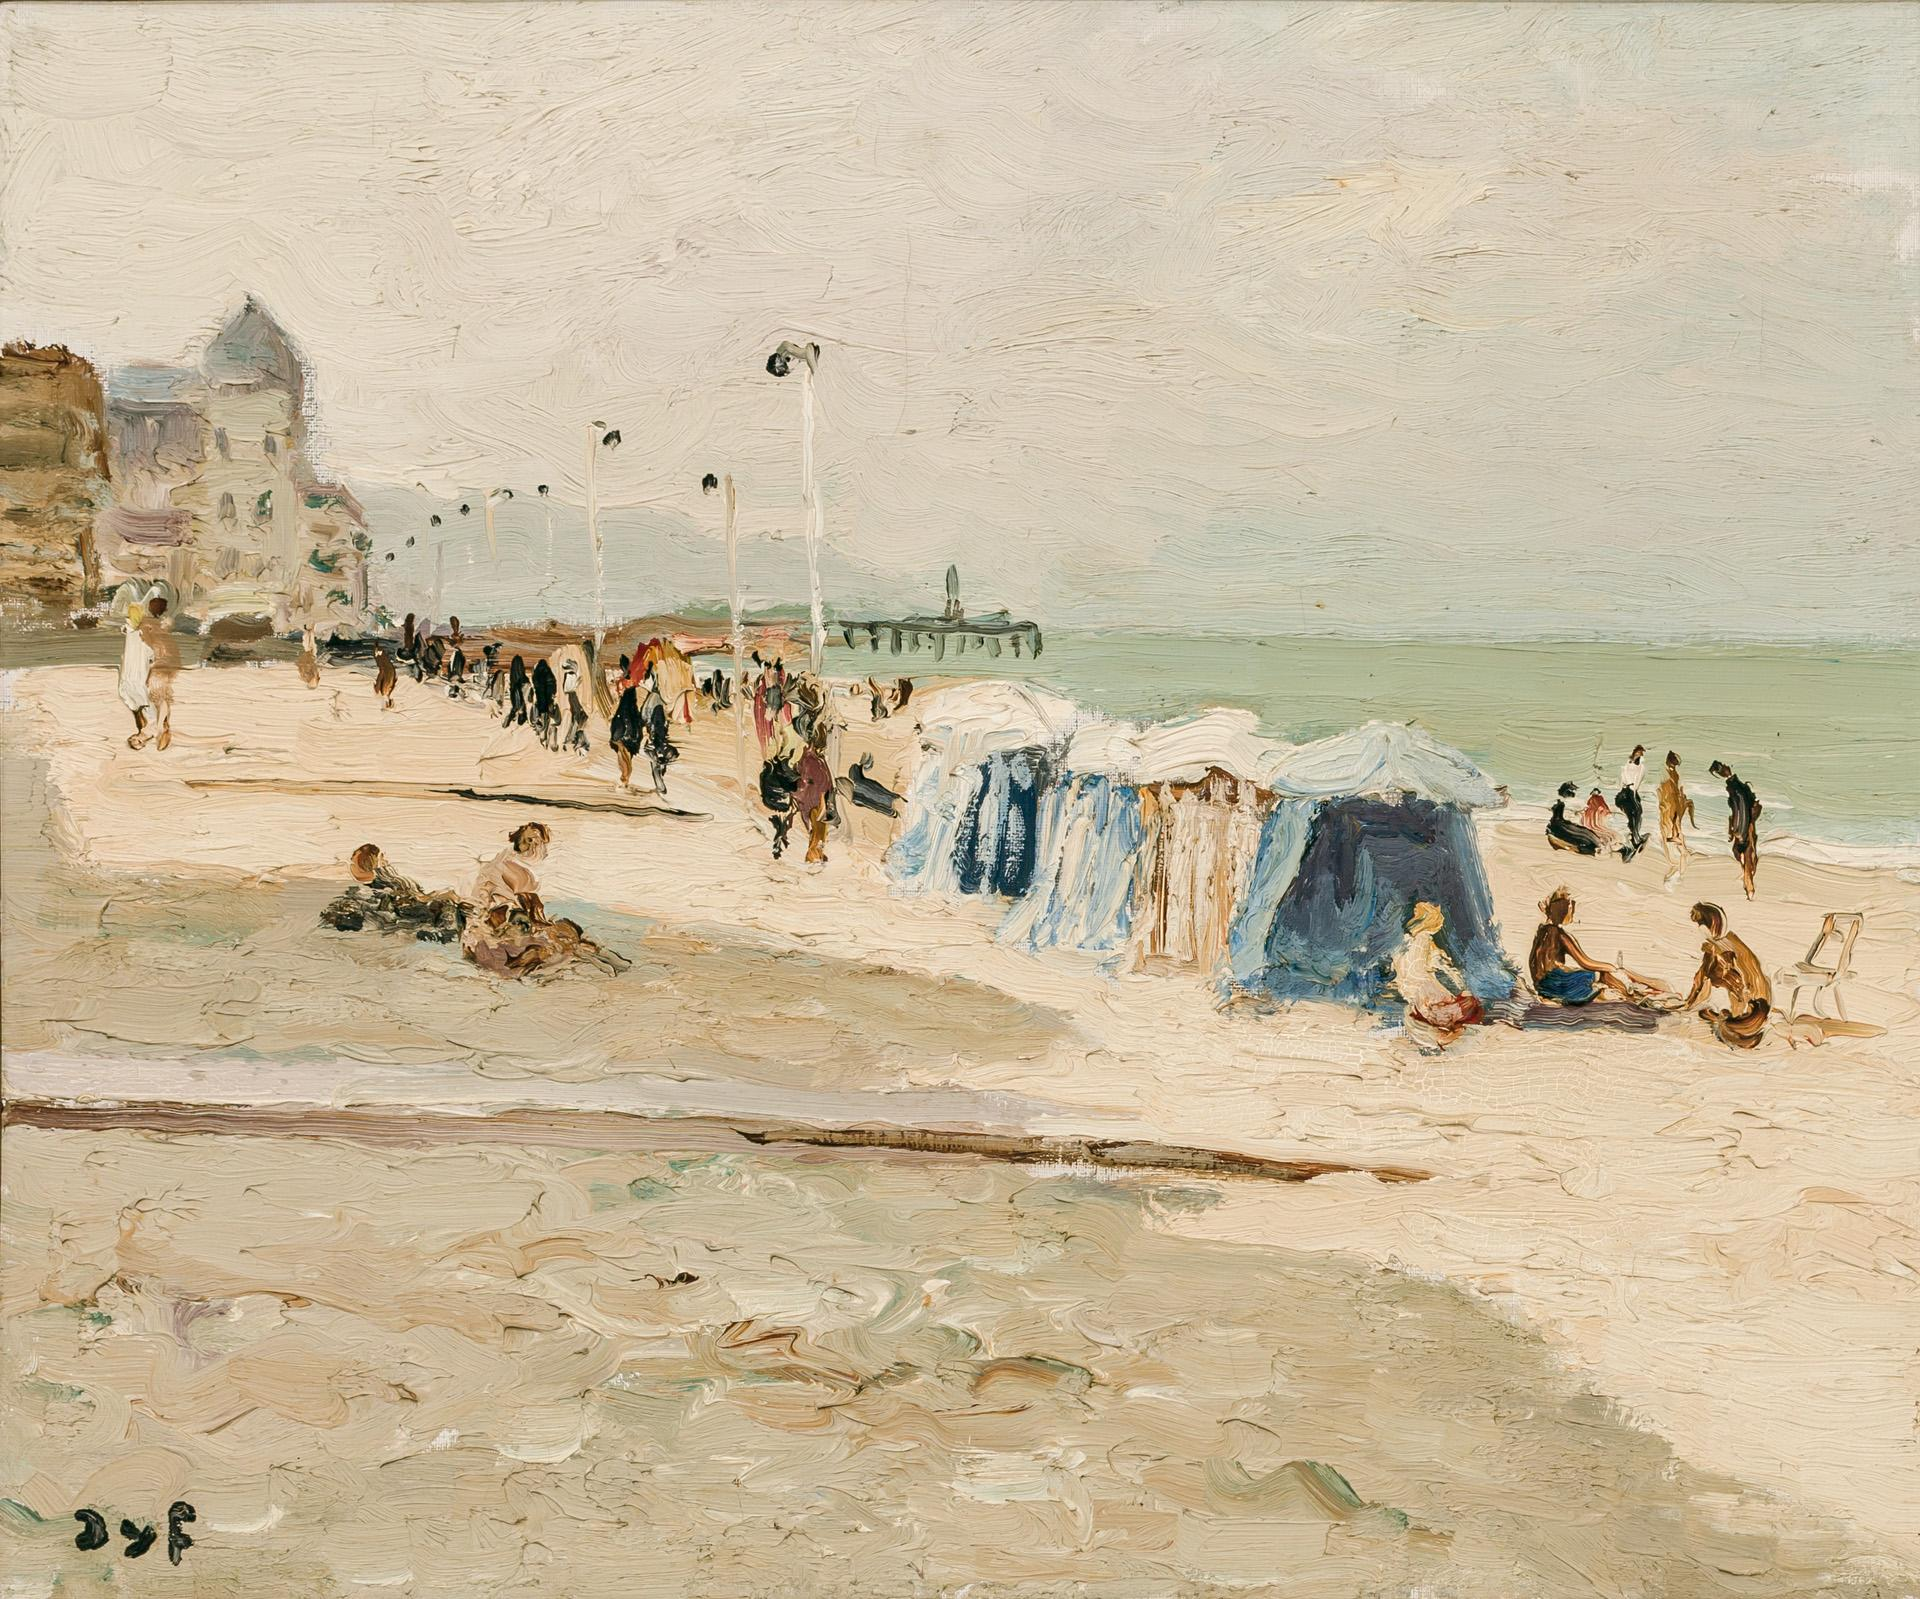 """MARCEL DYF, French (1899-1985), """"Plage de Trouville"""", oil on canvas, signed lower left """"Dyf"""", 18 x 21 1/2 inches"""